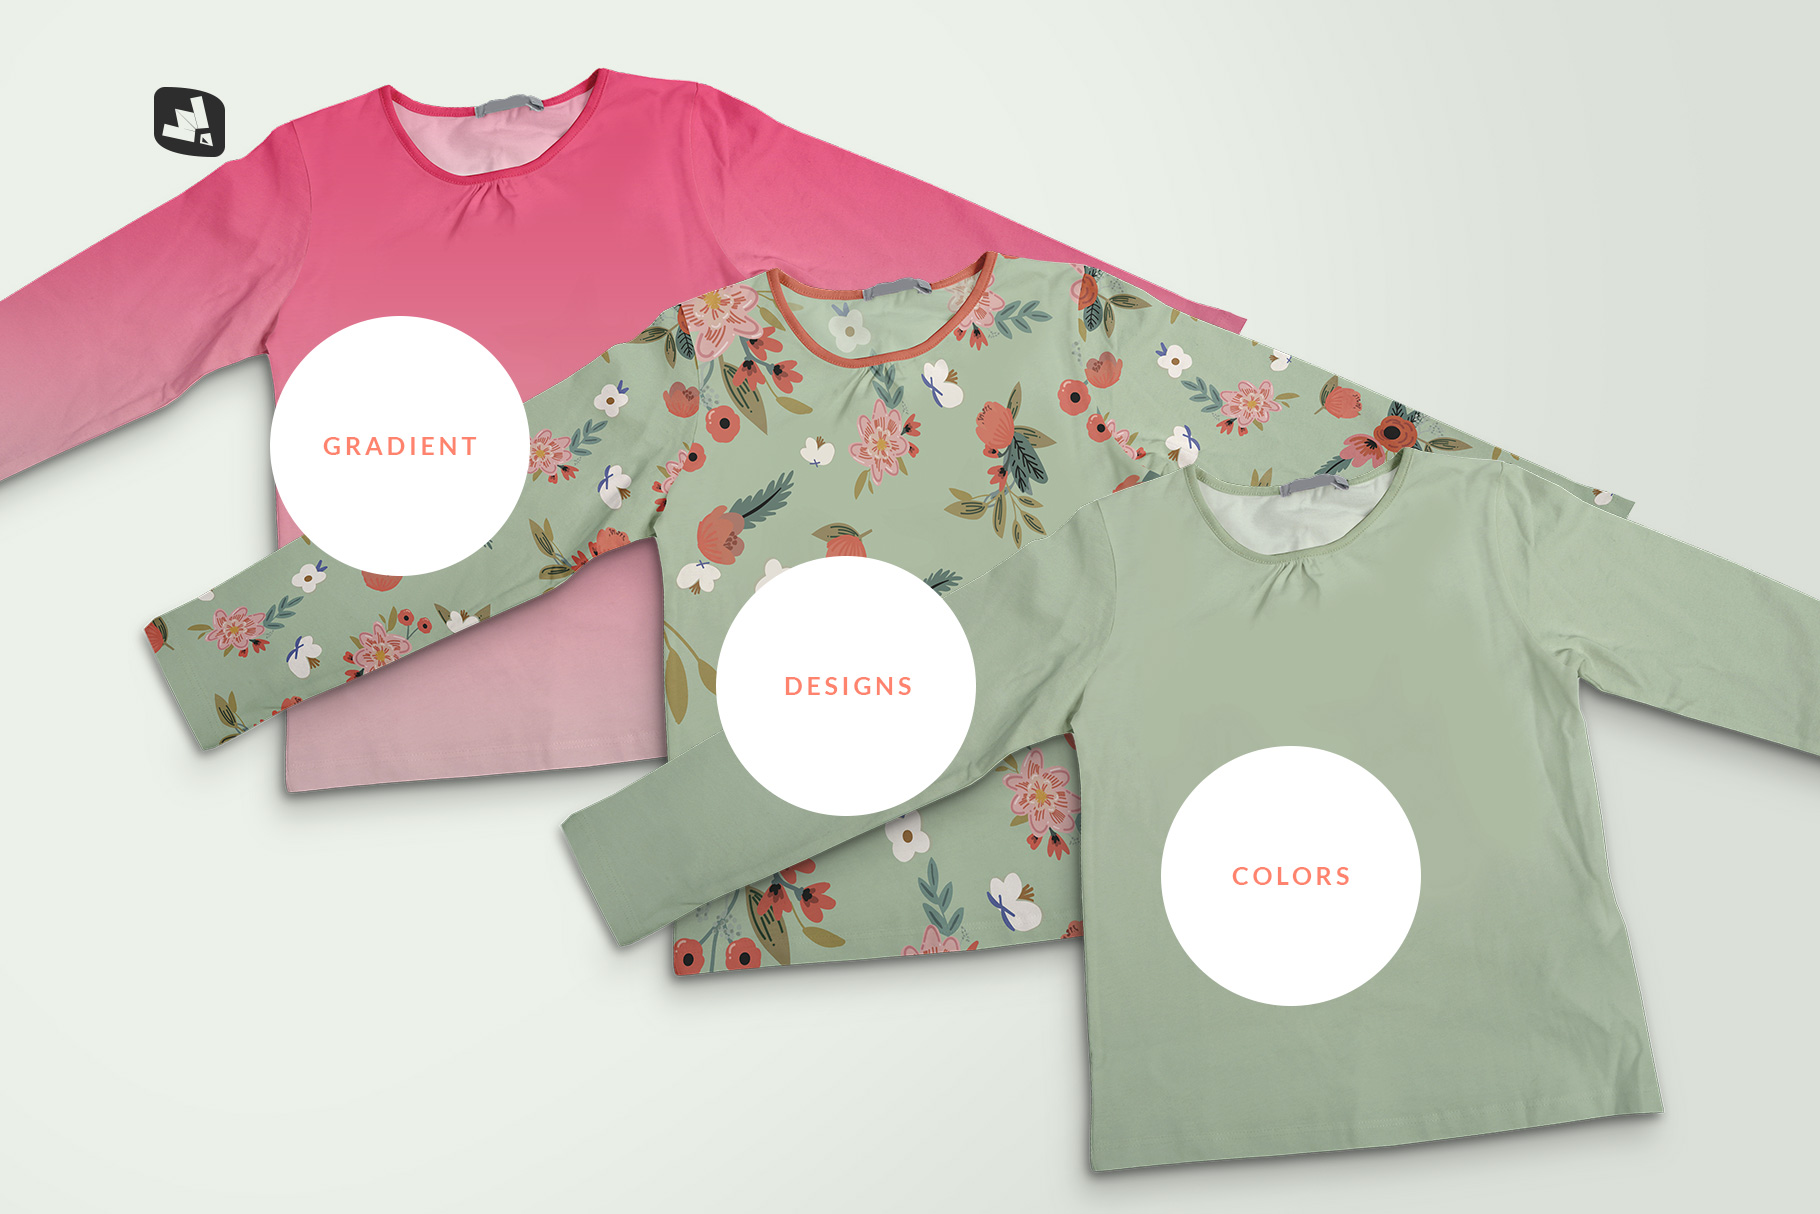 types of the top view girls full sleeve top mockup